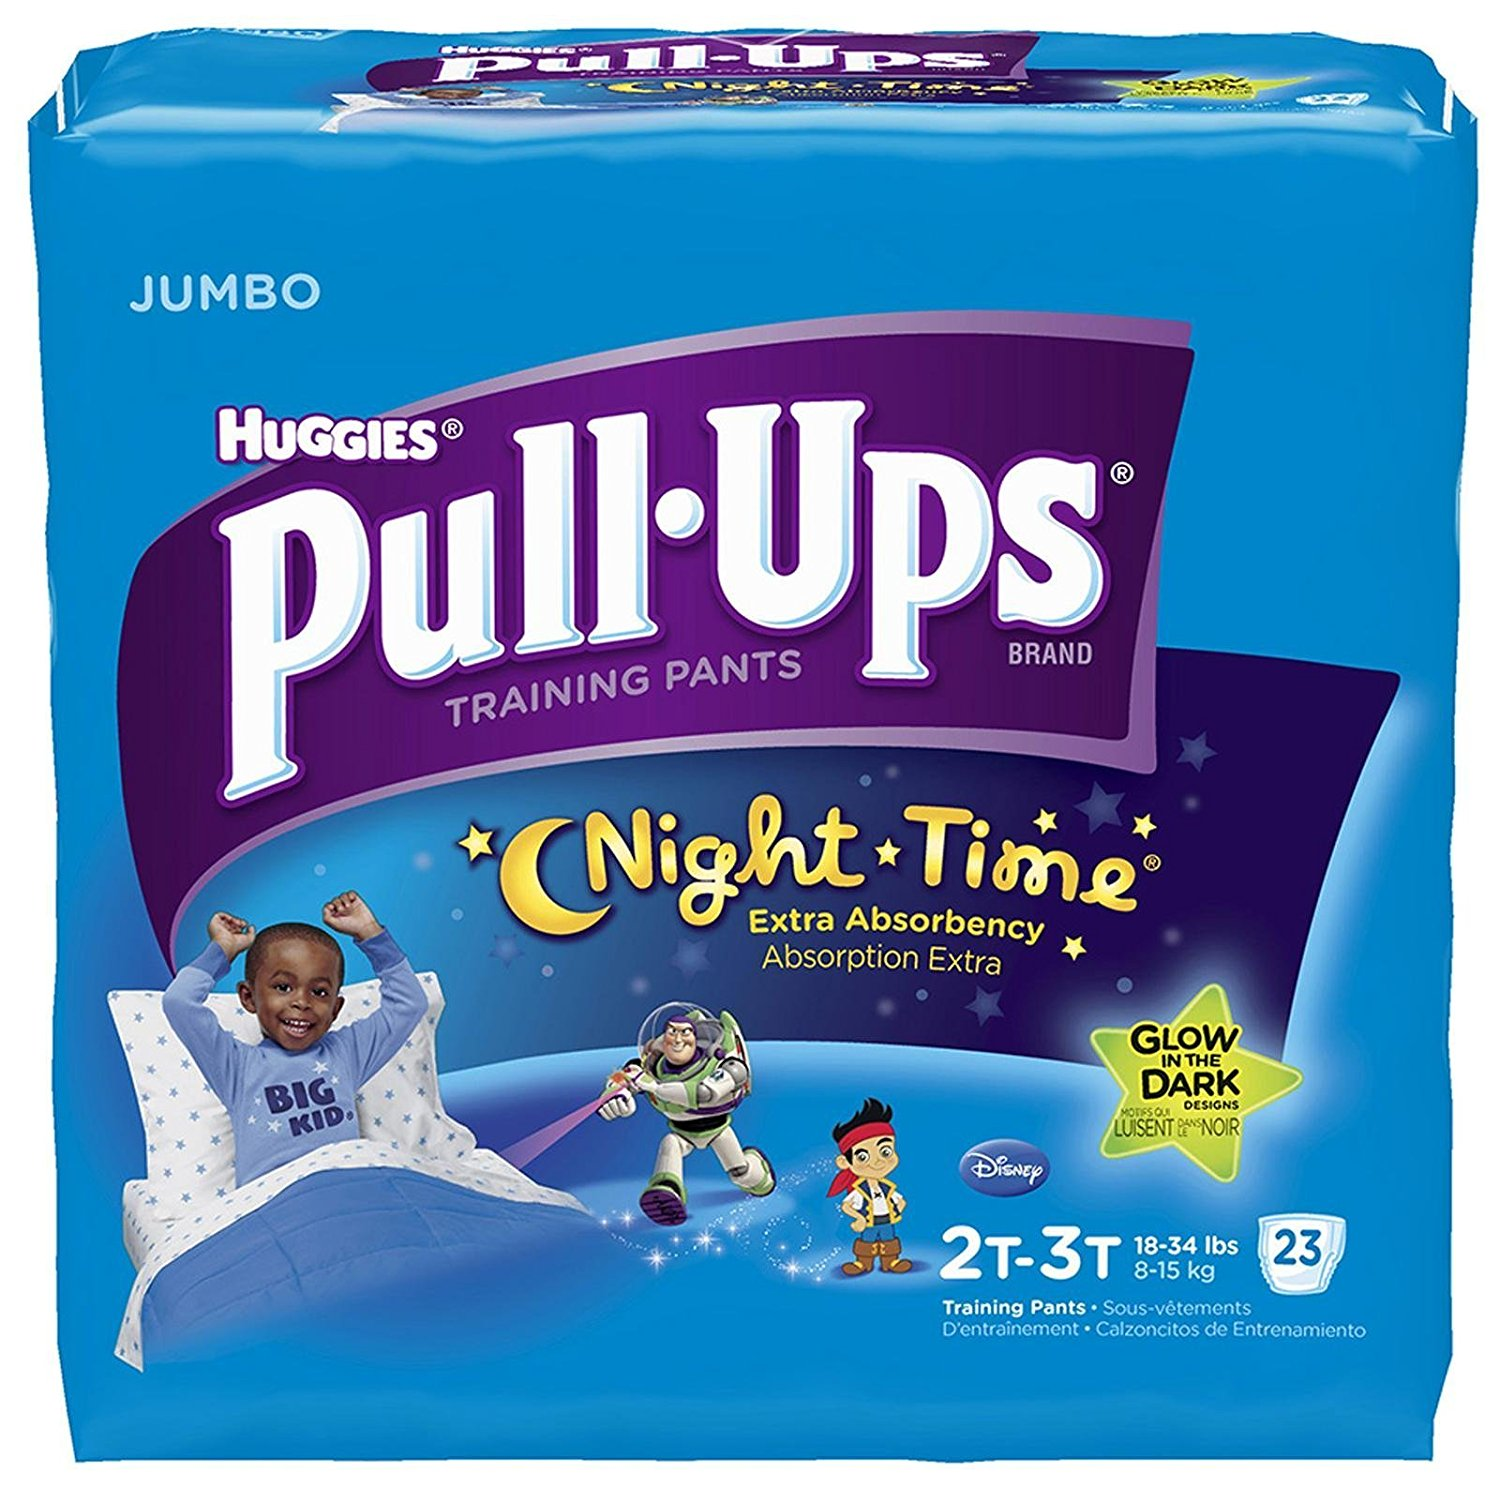 Pull-Ups Nighttime Training Pants - Boys - 2T-3T - 23 ct, Fits boys 2T-3T (up to 34 Pounds). As absorbent as the leading night time diaper when compared.., By HUGGIES